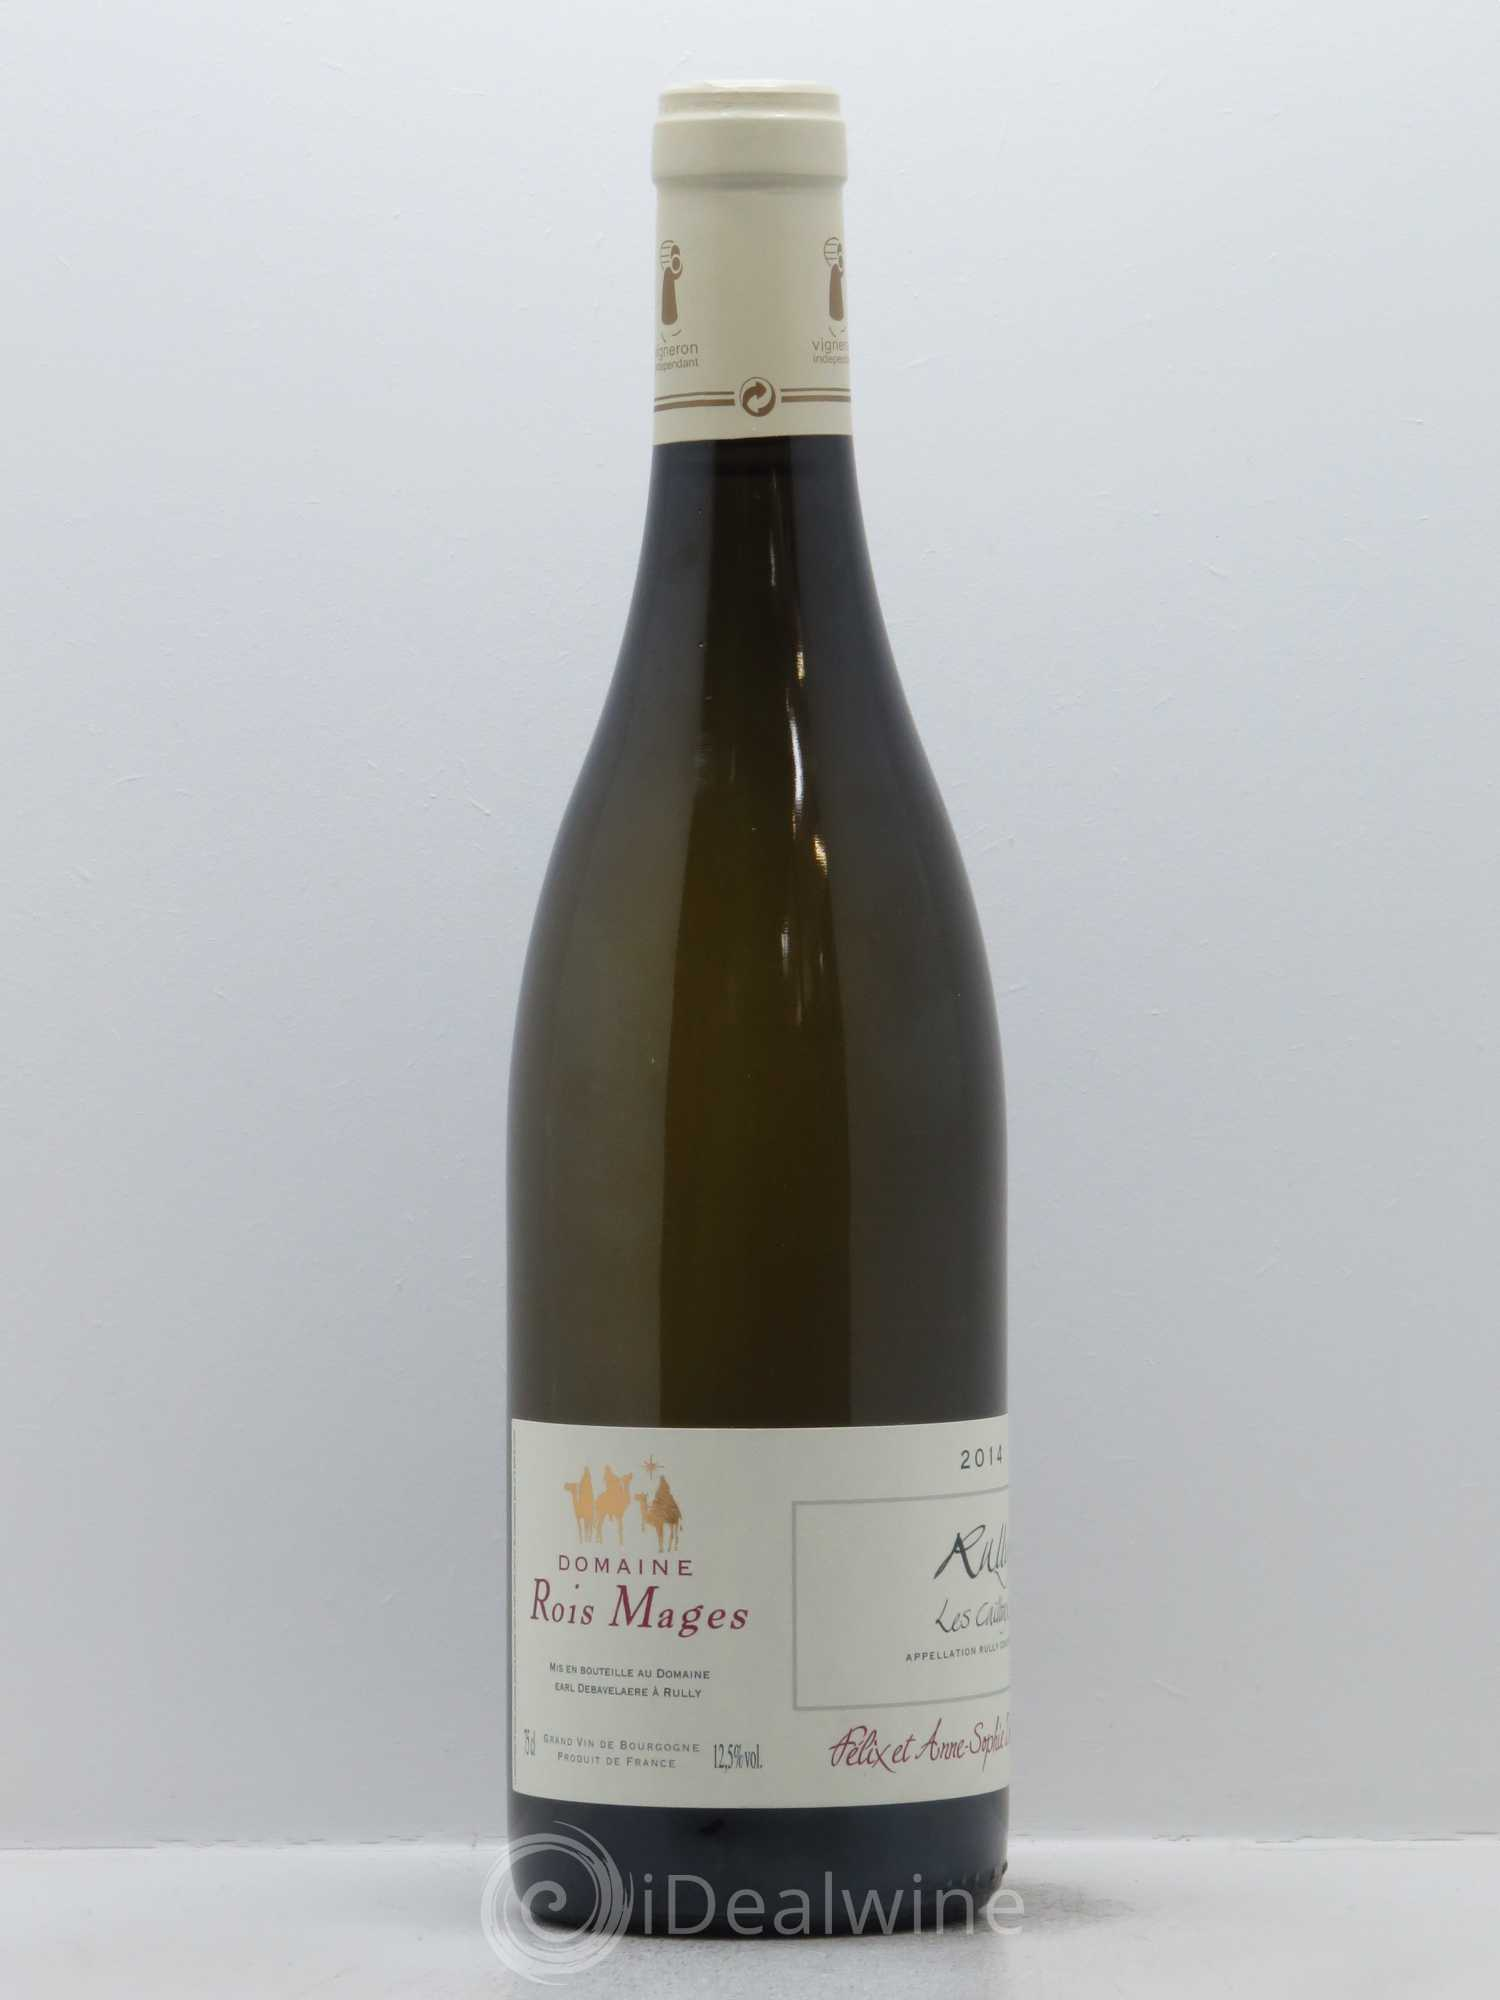 Acheter rully les cailloux rois mages domaine 2014 lot for Achat cailloux blanc